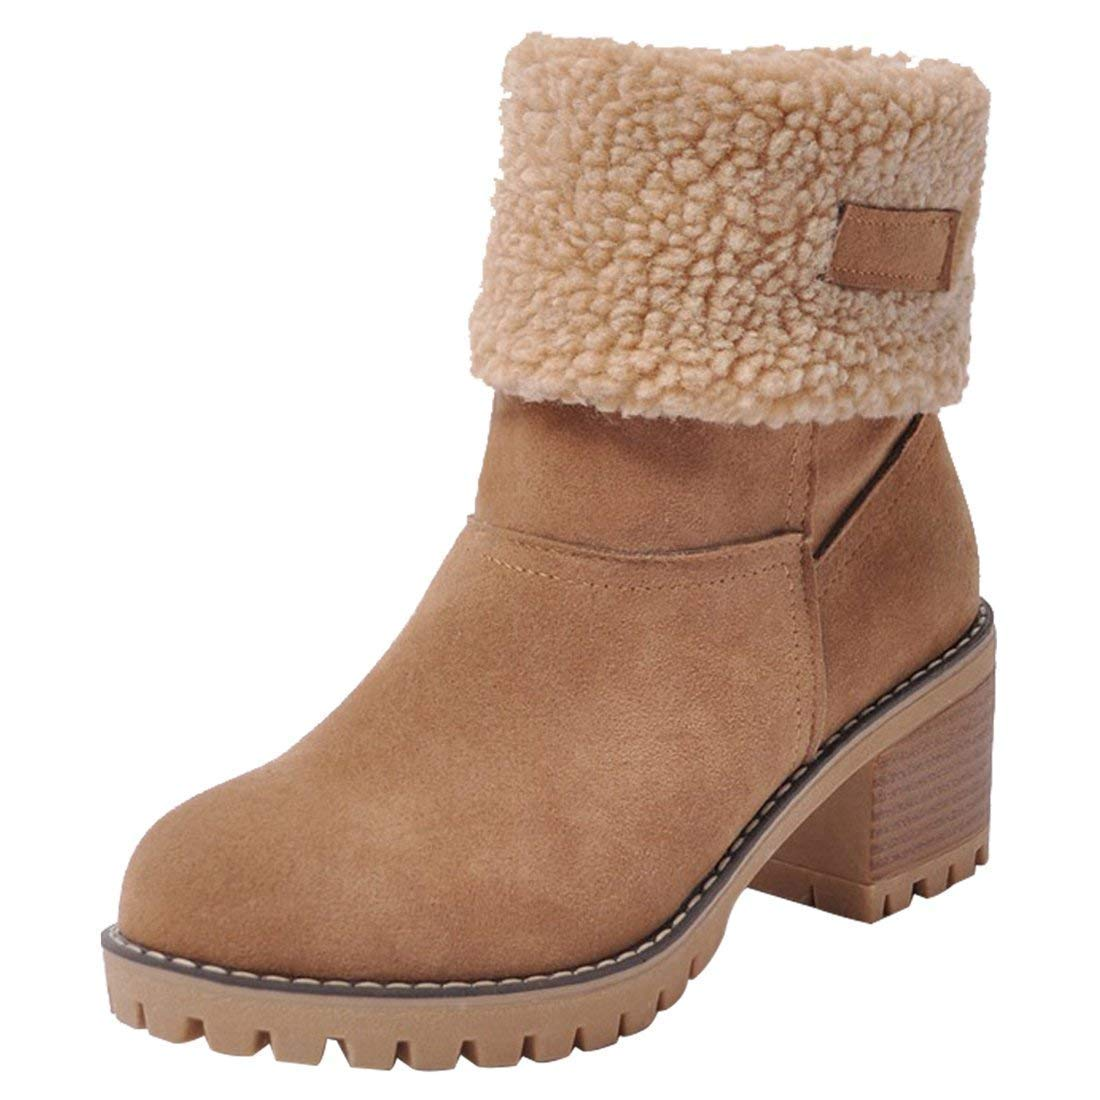 Camel Susanny Womens Ankle Snow Boots Winter Warm Fur Booties Chunky Mid Heels Cute shoes